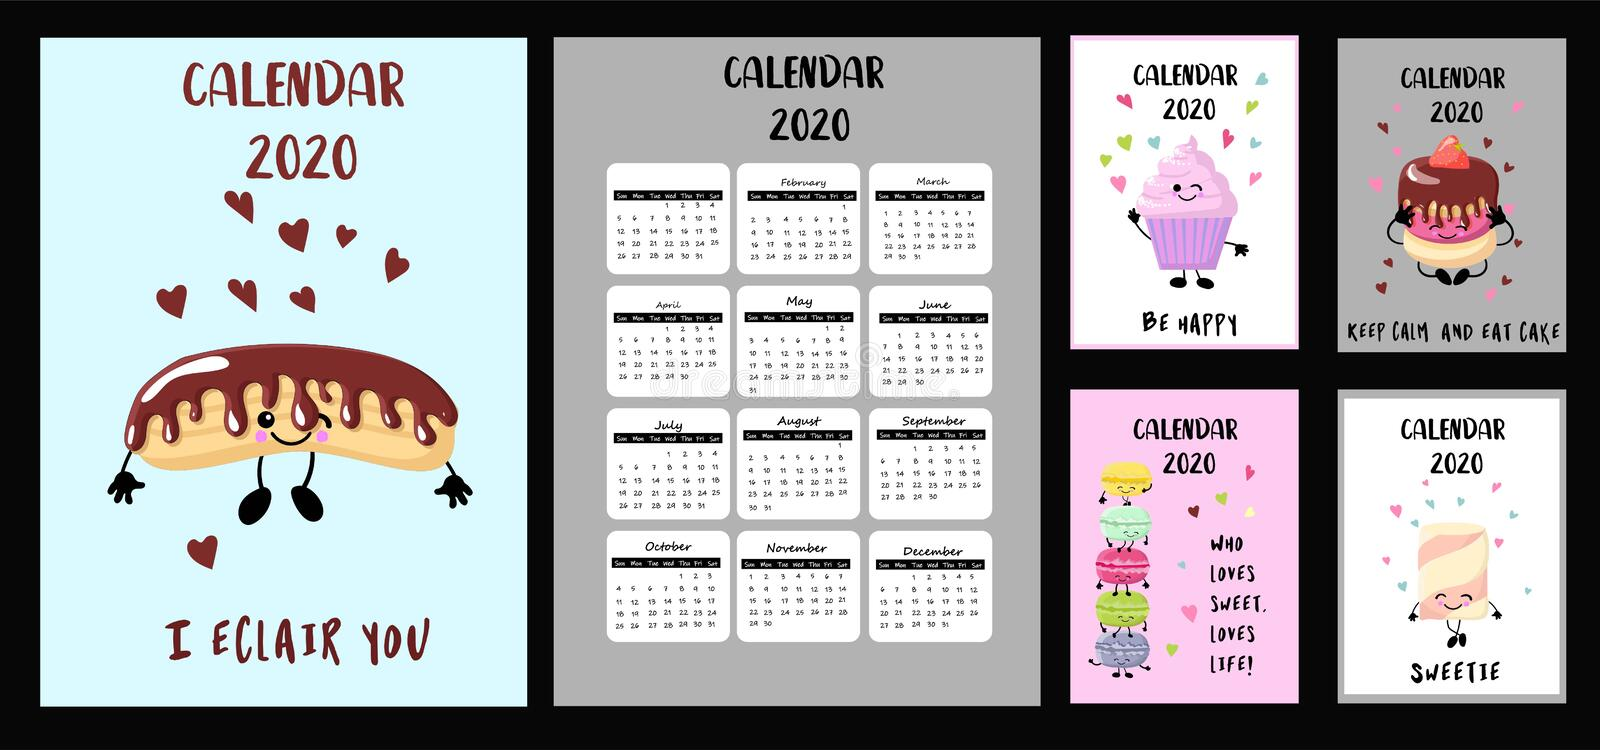 Year 2018 2019 2020 calendar vector design template, simple and stock illustration